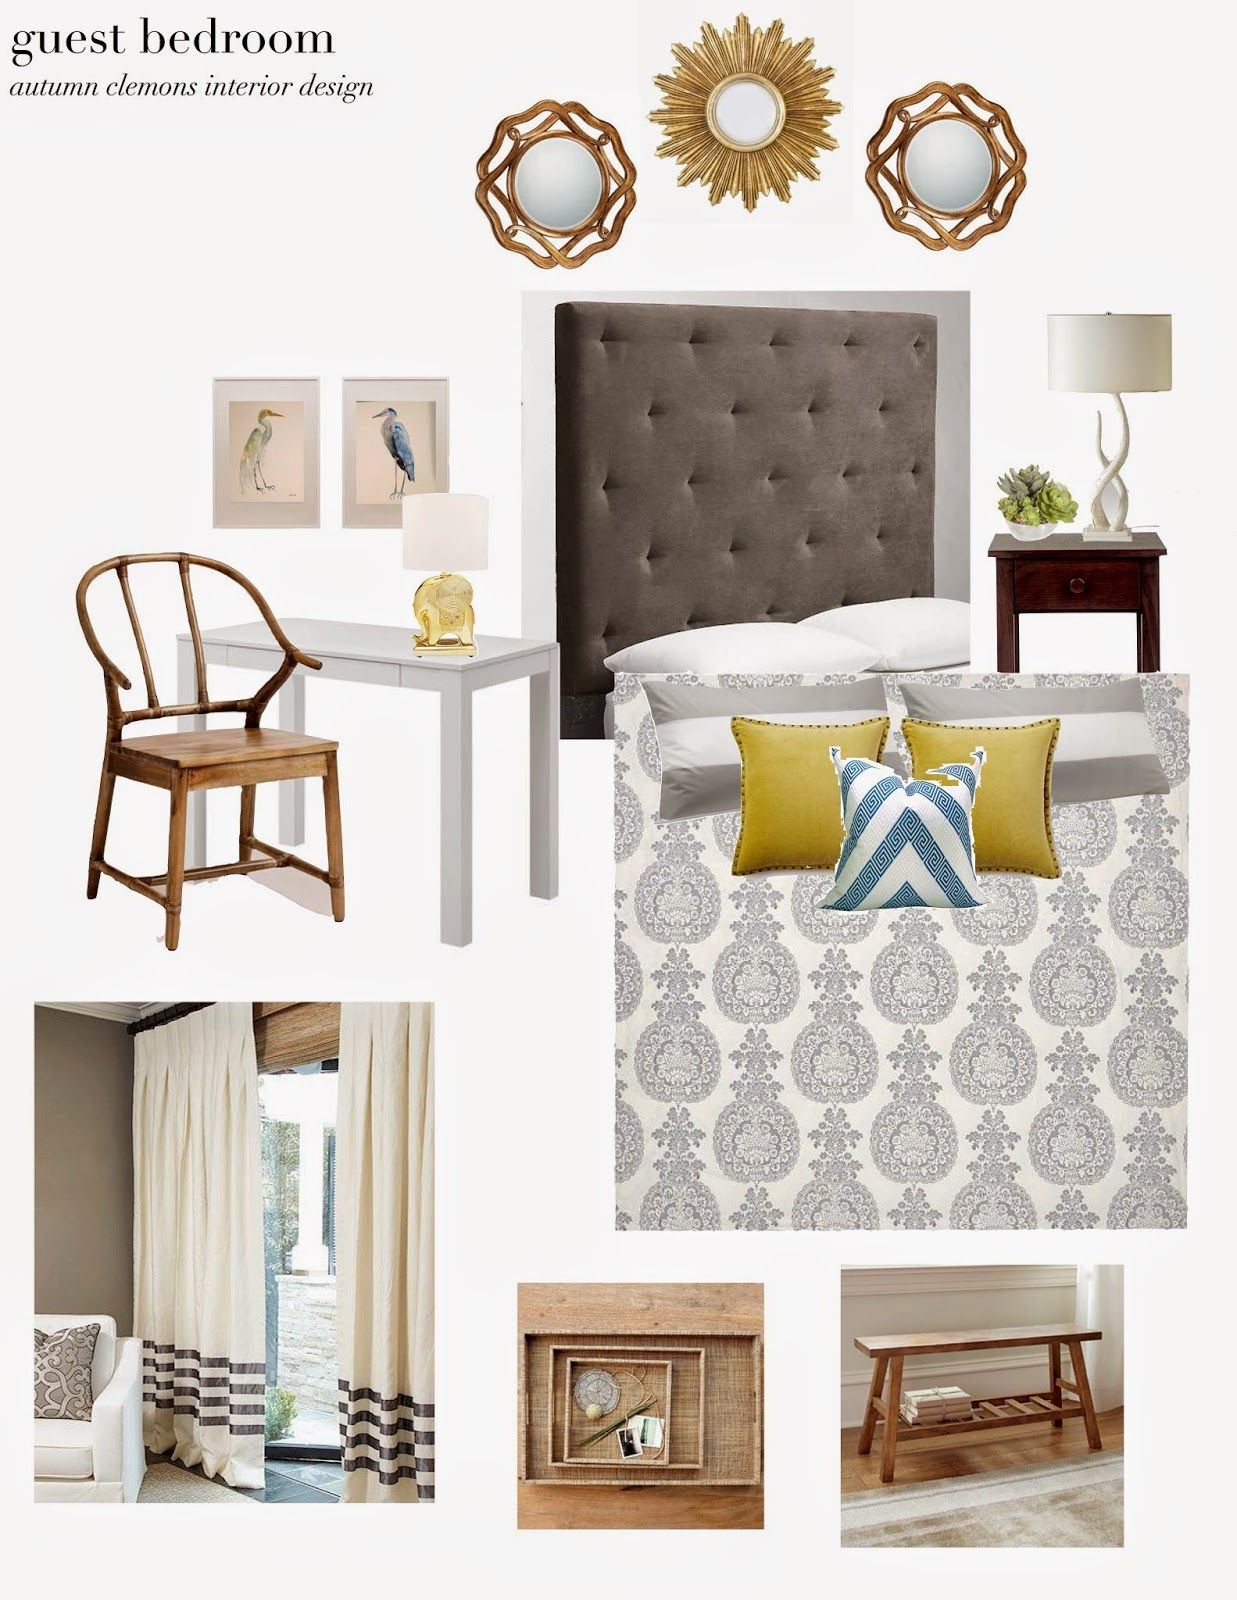 design plan for guest bedroom, using items from west elm ...